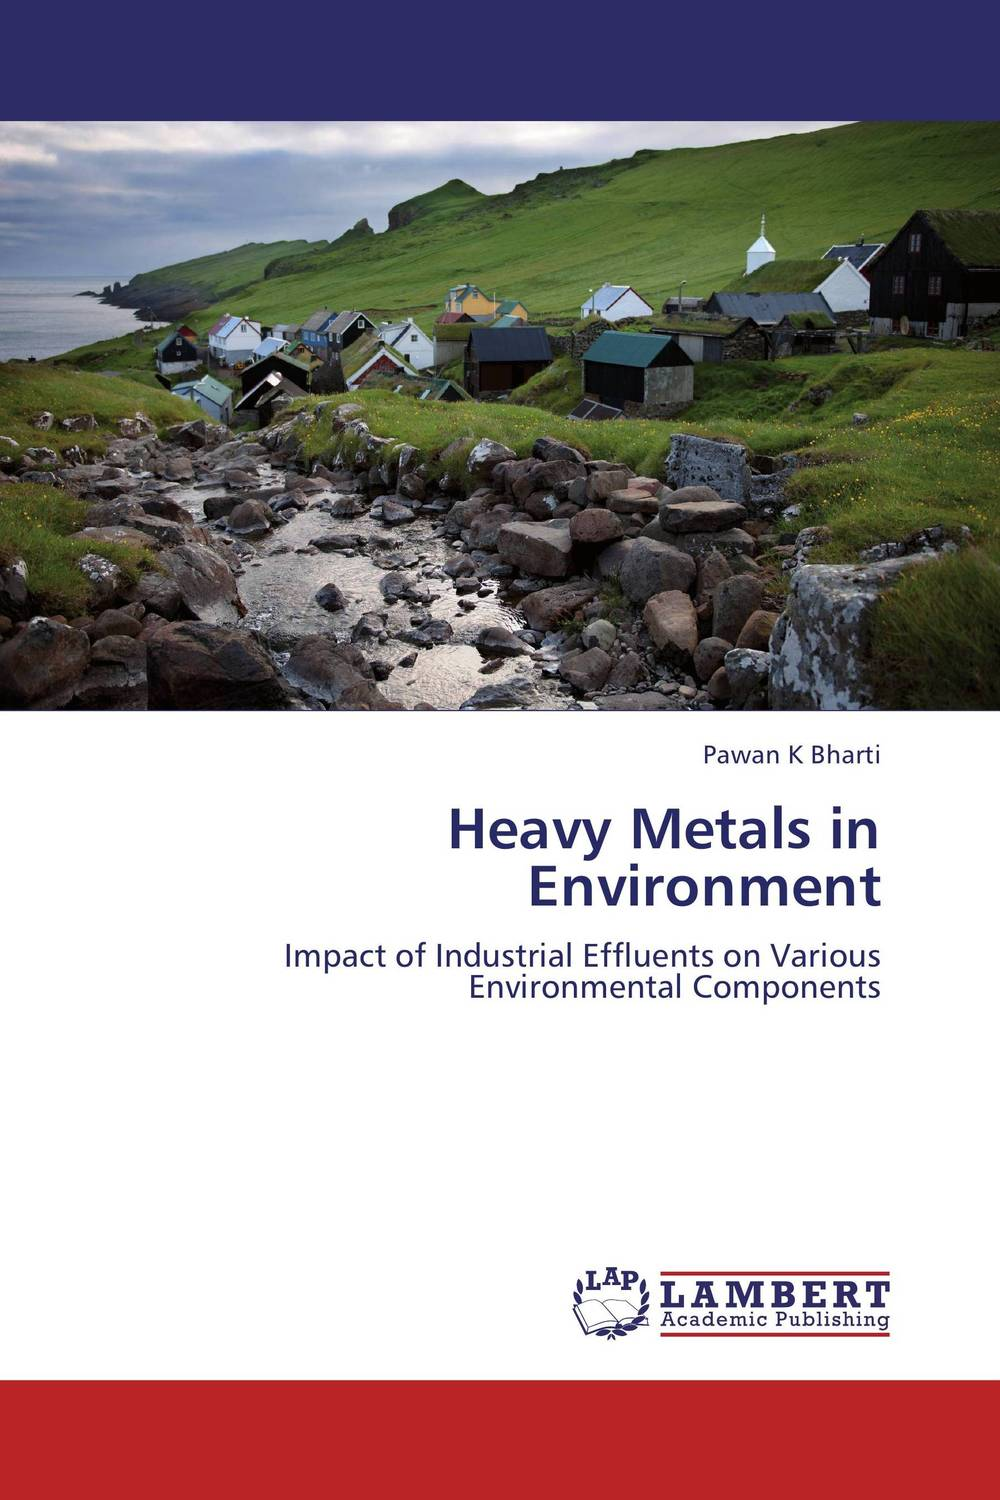 Heavy Metals in Environment marwan a ibrahim effect of heavy metals on haematological and testicular functions